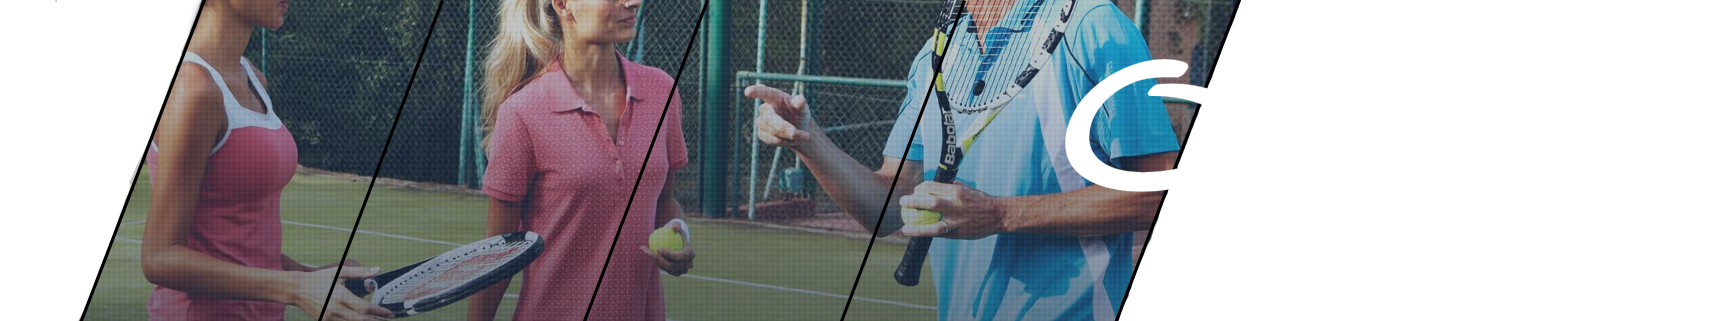 websitebanner_tennislessons